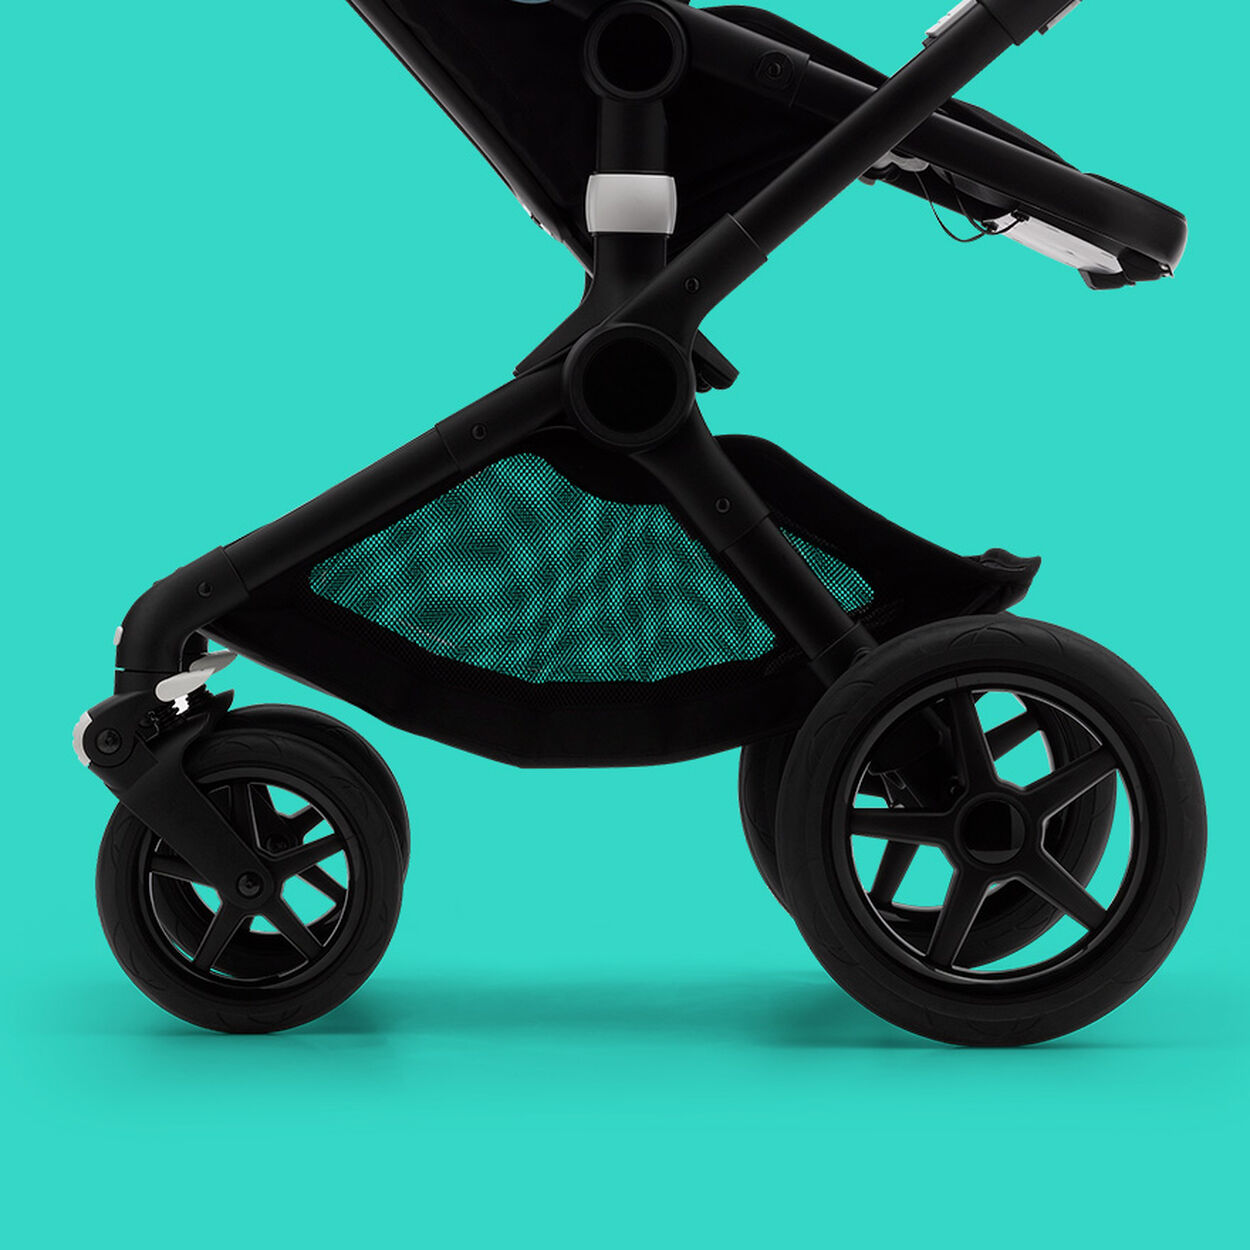 Fox 2 stroller wheels and underseat basket